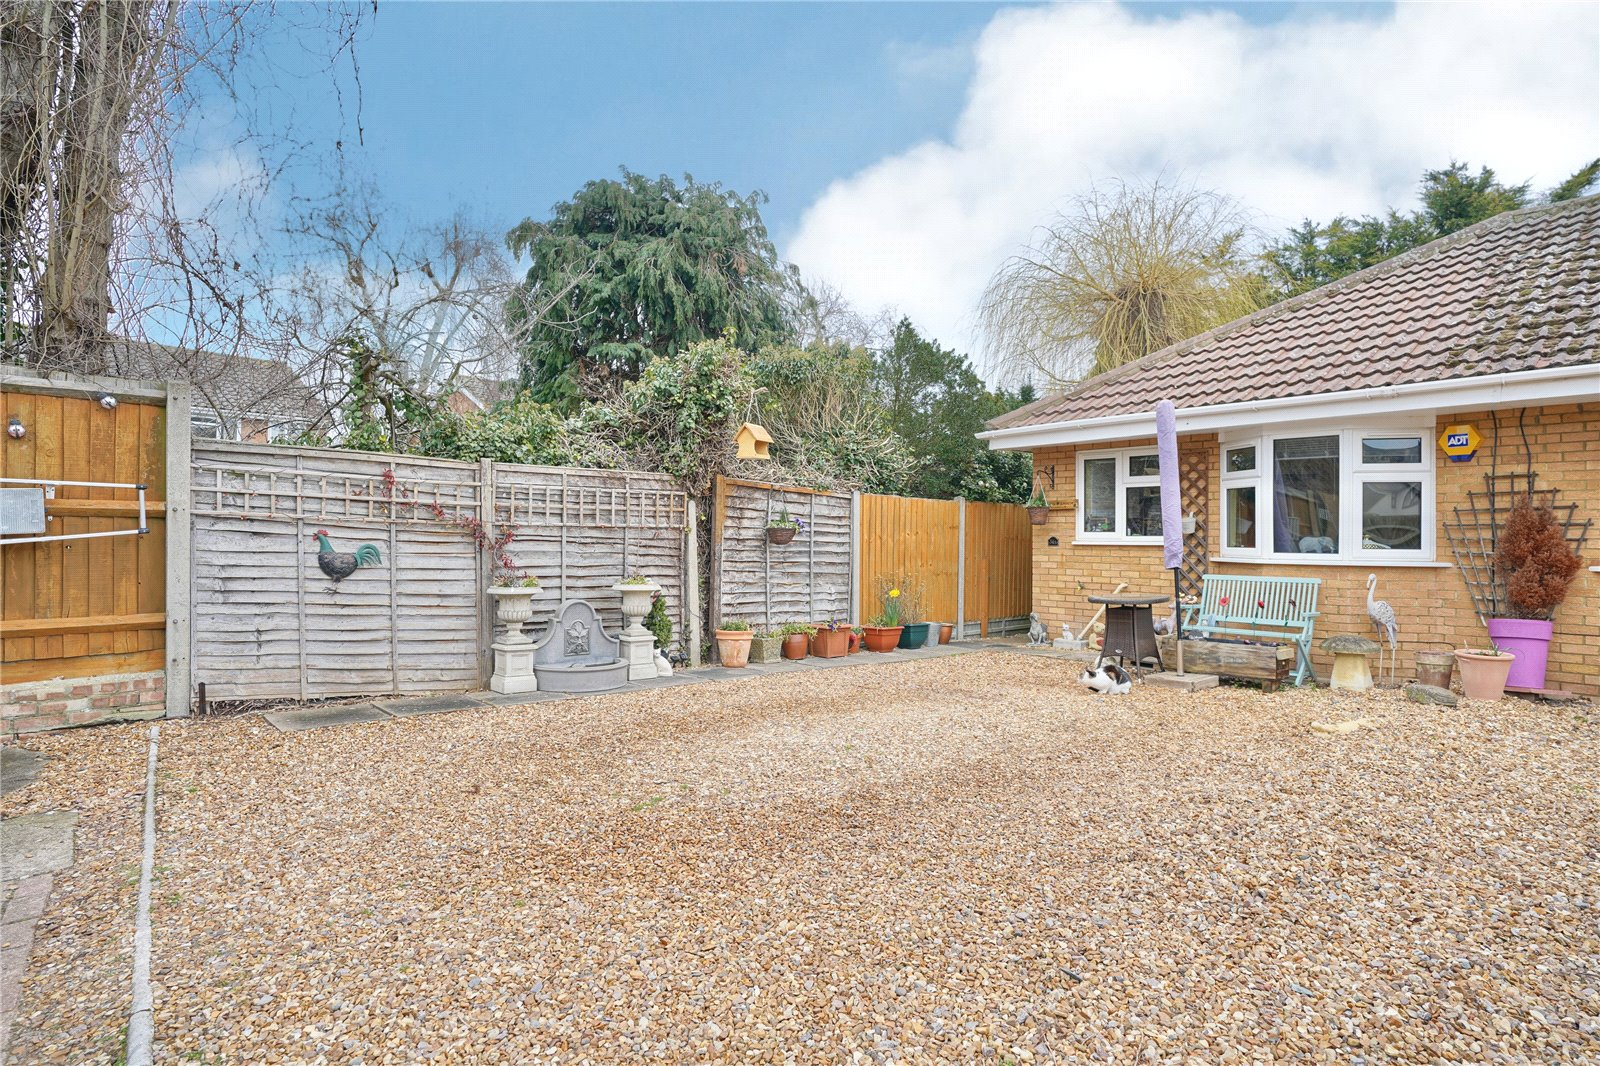 1 bed house for sale in The Highway, Great Staughton  - Property Image 1